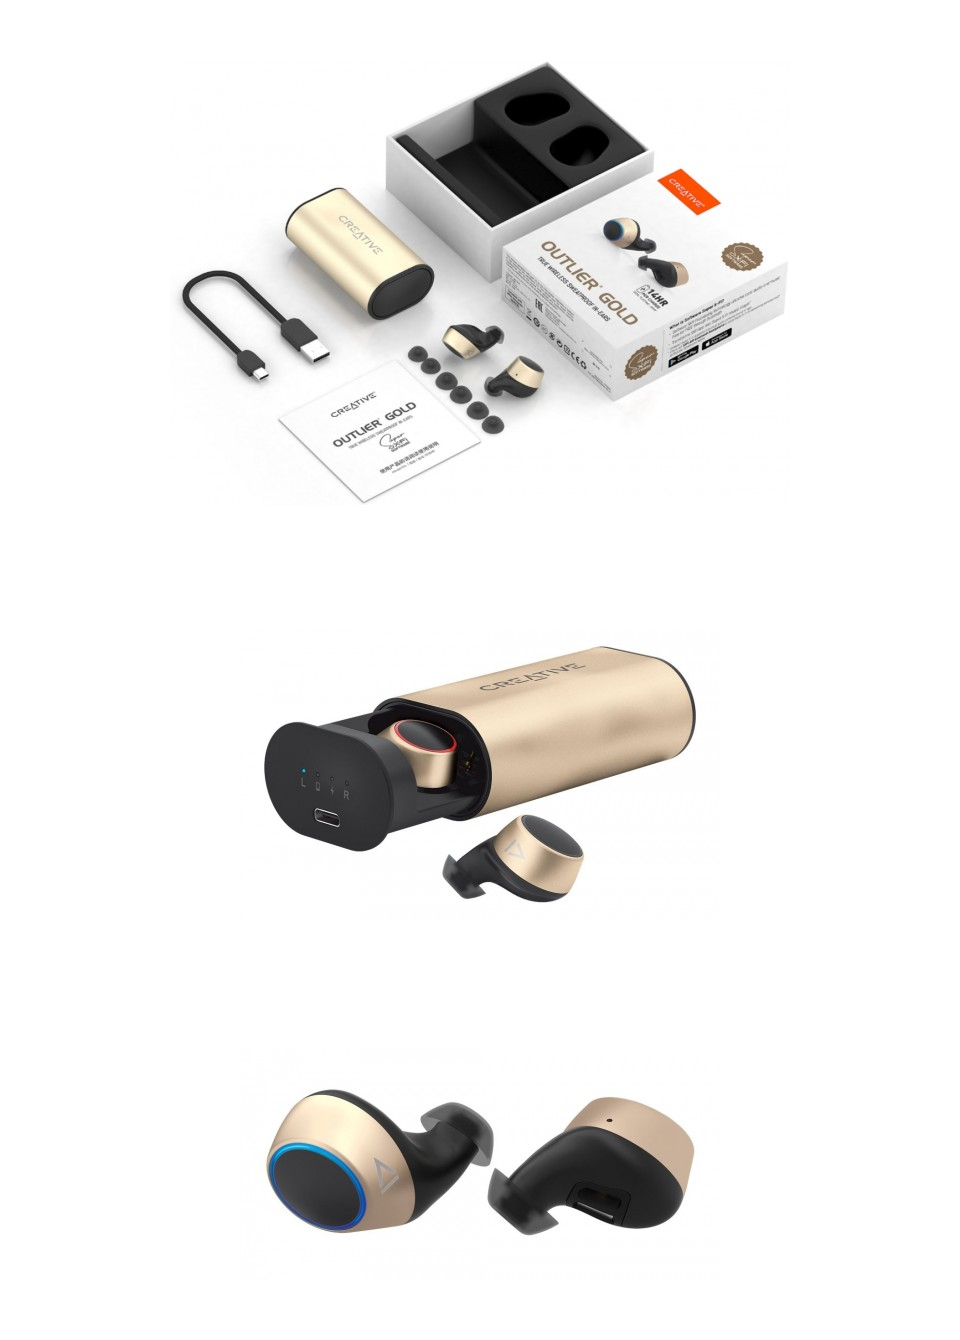 Creative Outlier Gold True Wireless In-Ear Headphones product